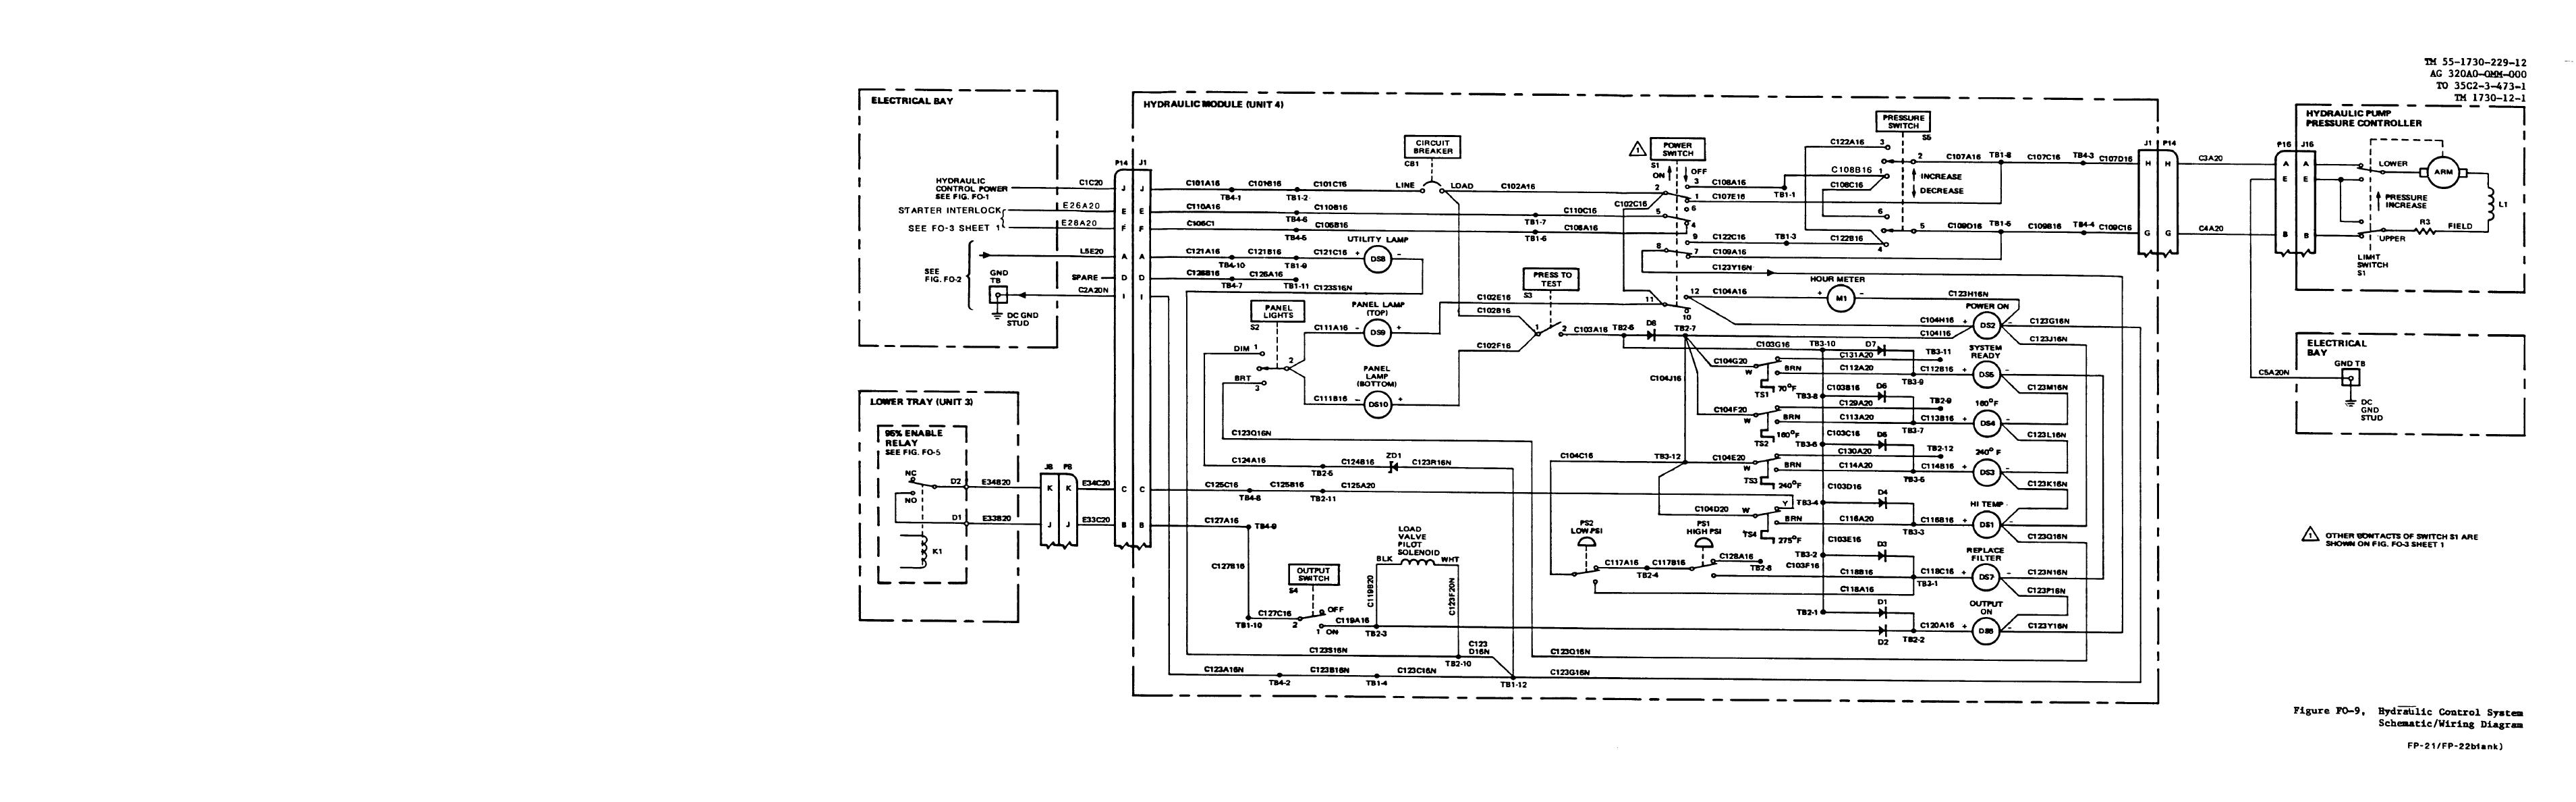 TM 55 1730 229 120552im figure fo 9 hydraulic control system schematic wiring diagram wiring diagram for access control system at edmiracle.co